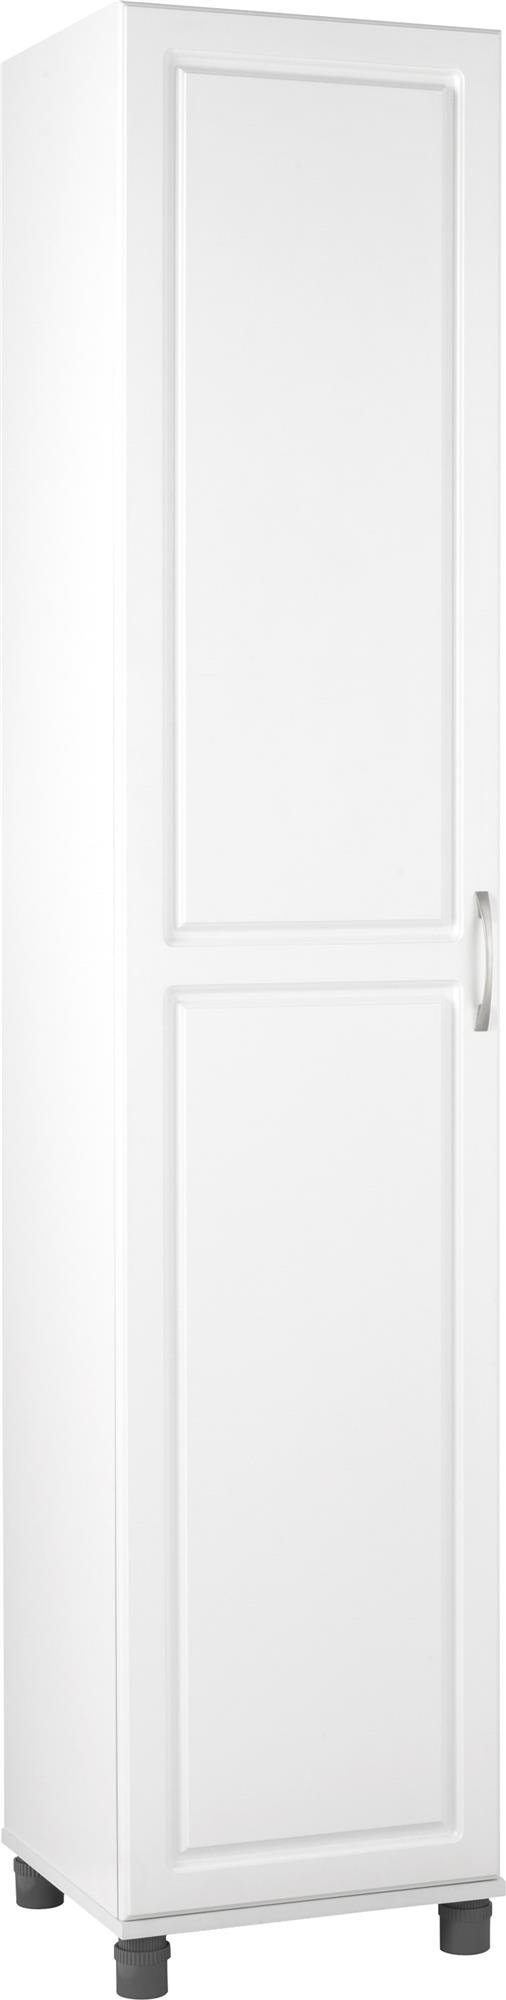 Ameriwood Kendall Storage Cabinet 16'' White by SystemBuild